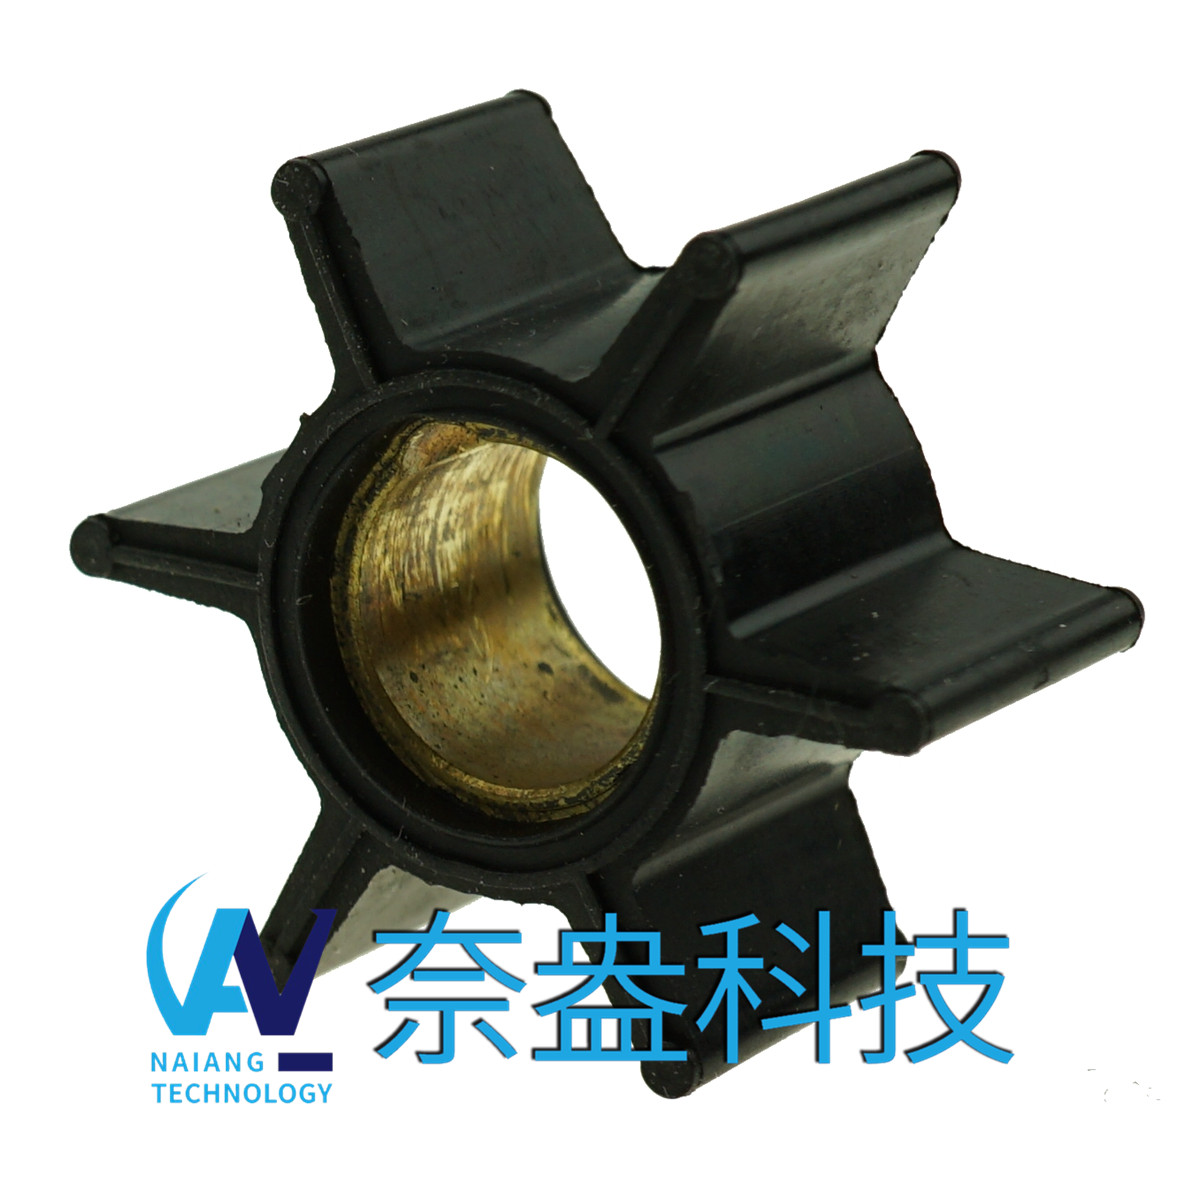 水星舷外機橡膠葉輪 Mercury Impeller 47-89980/47-6898